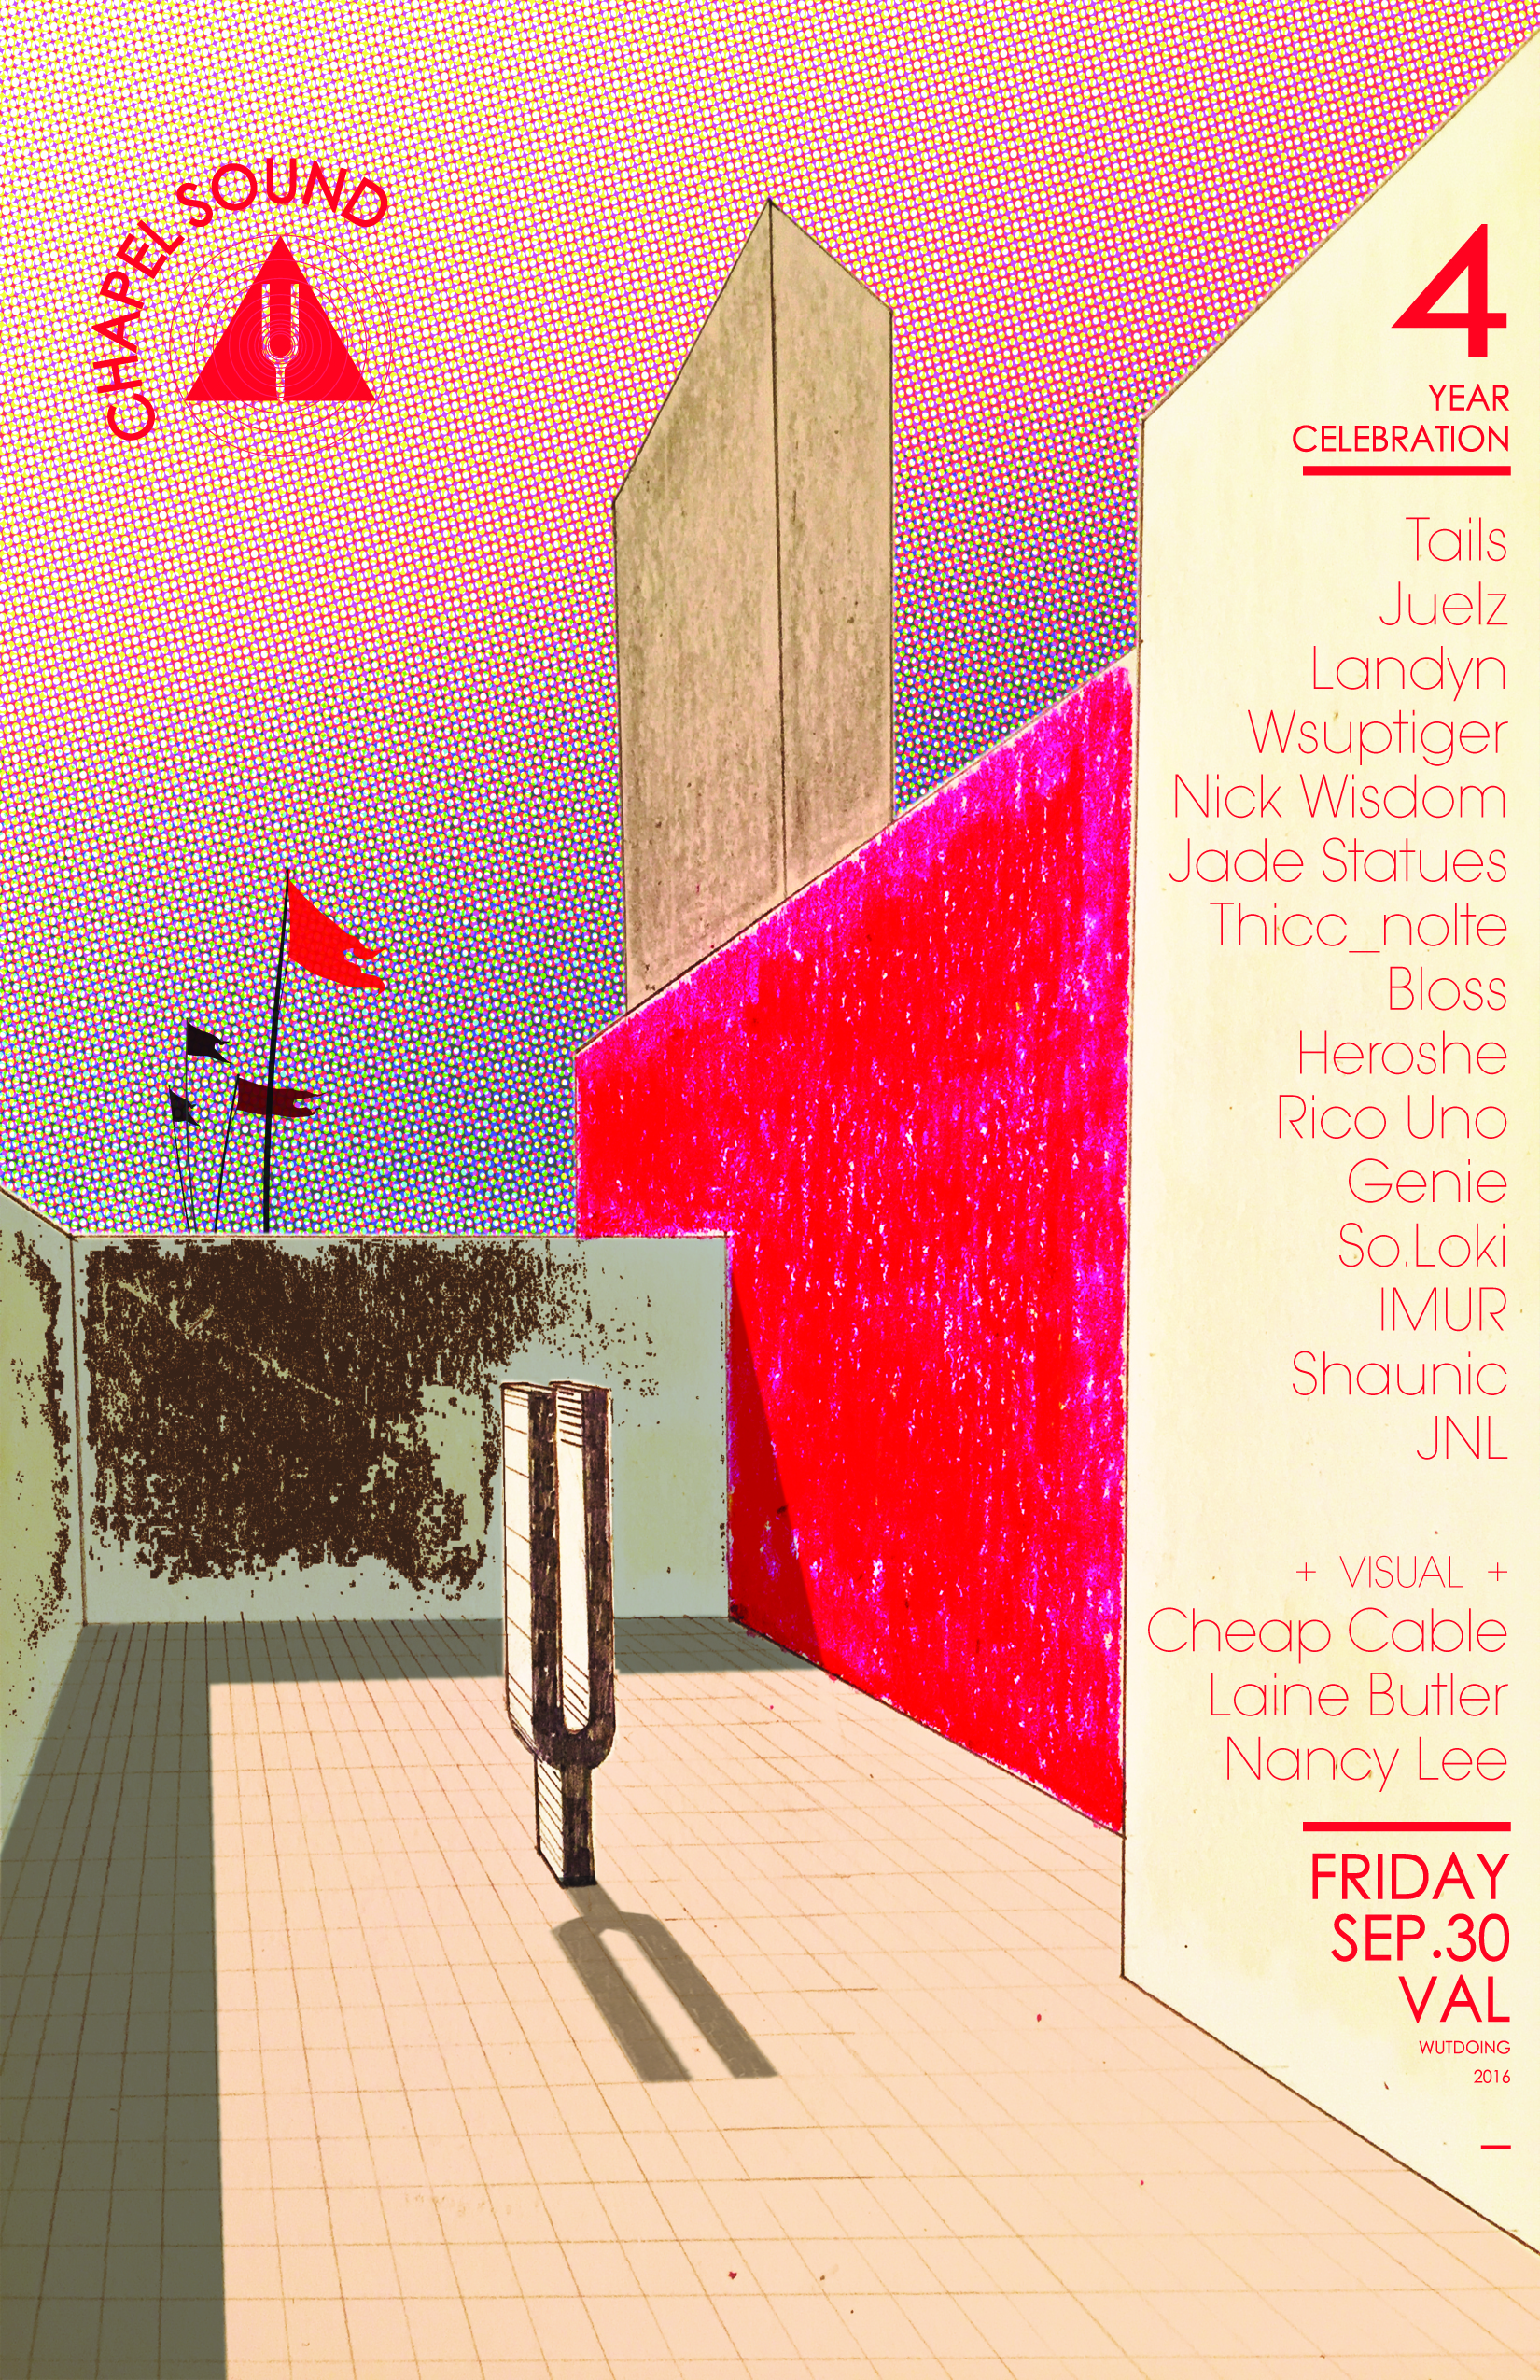 chapelsound 4th year poster-01.jpg